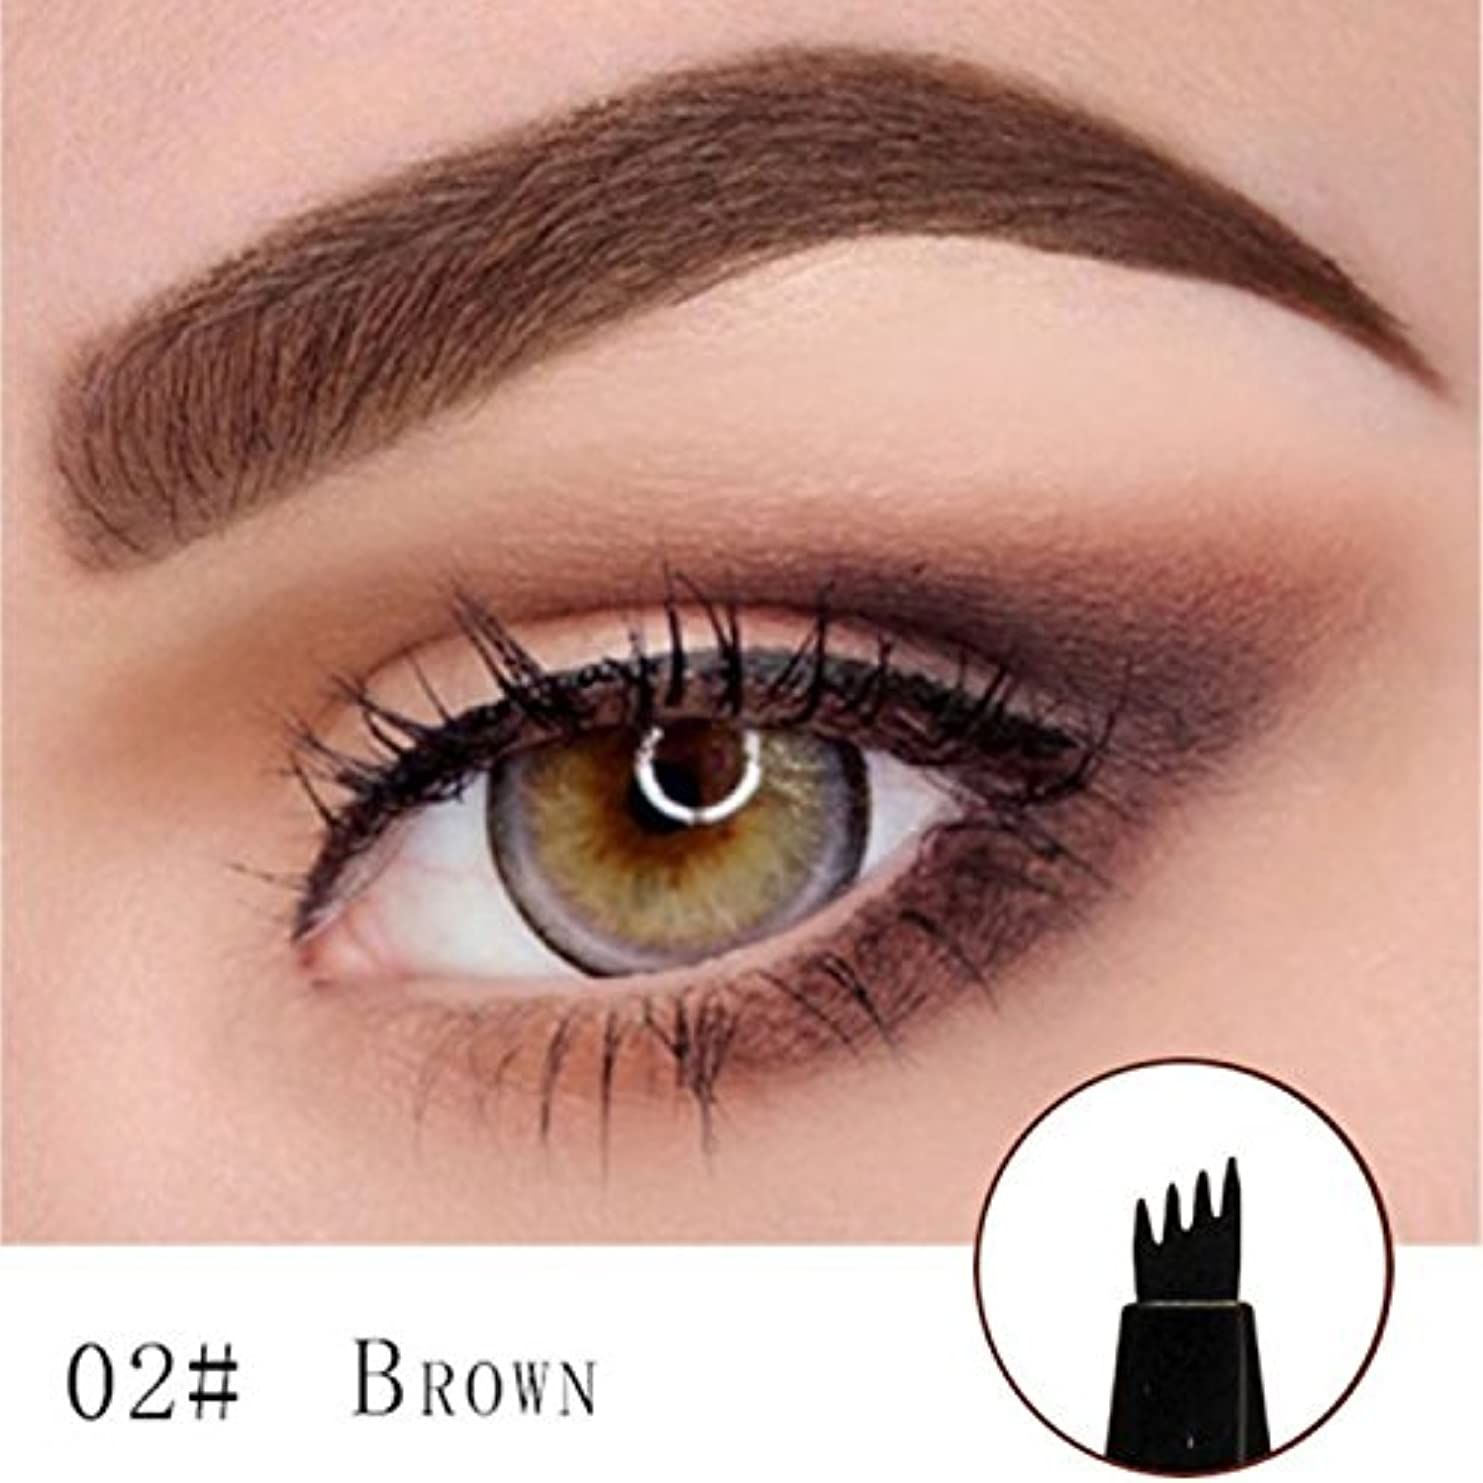 トラブル治安判事篭Microblading Eyebrow Tattoo Pen (Brown) Micro Blade Eyebrow Tattoo Pen (Brown)